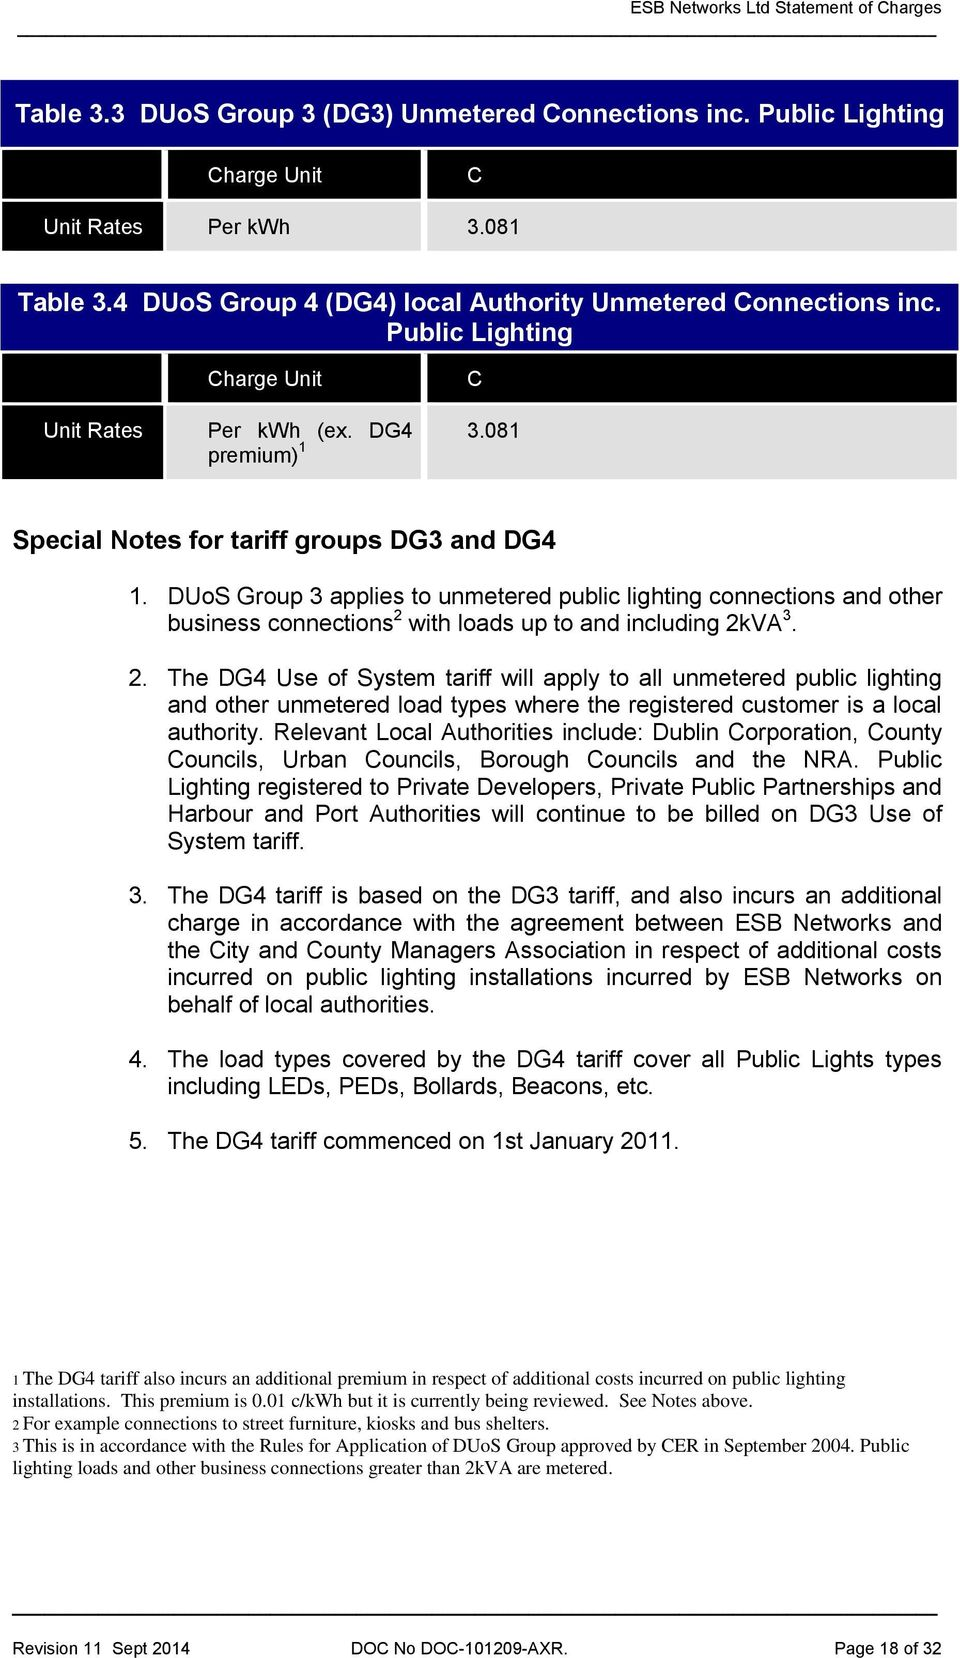 DUoS Group 3 applies to unmetered public lighting connections and other business connections 2